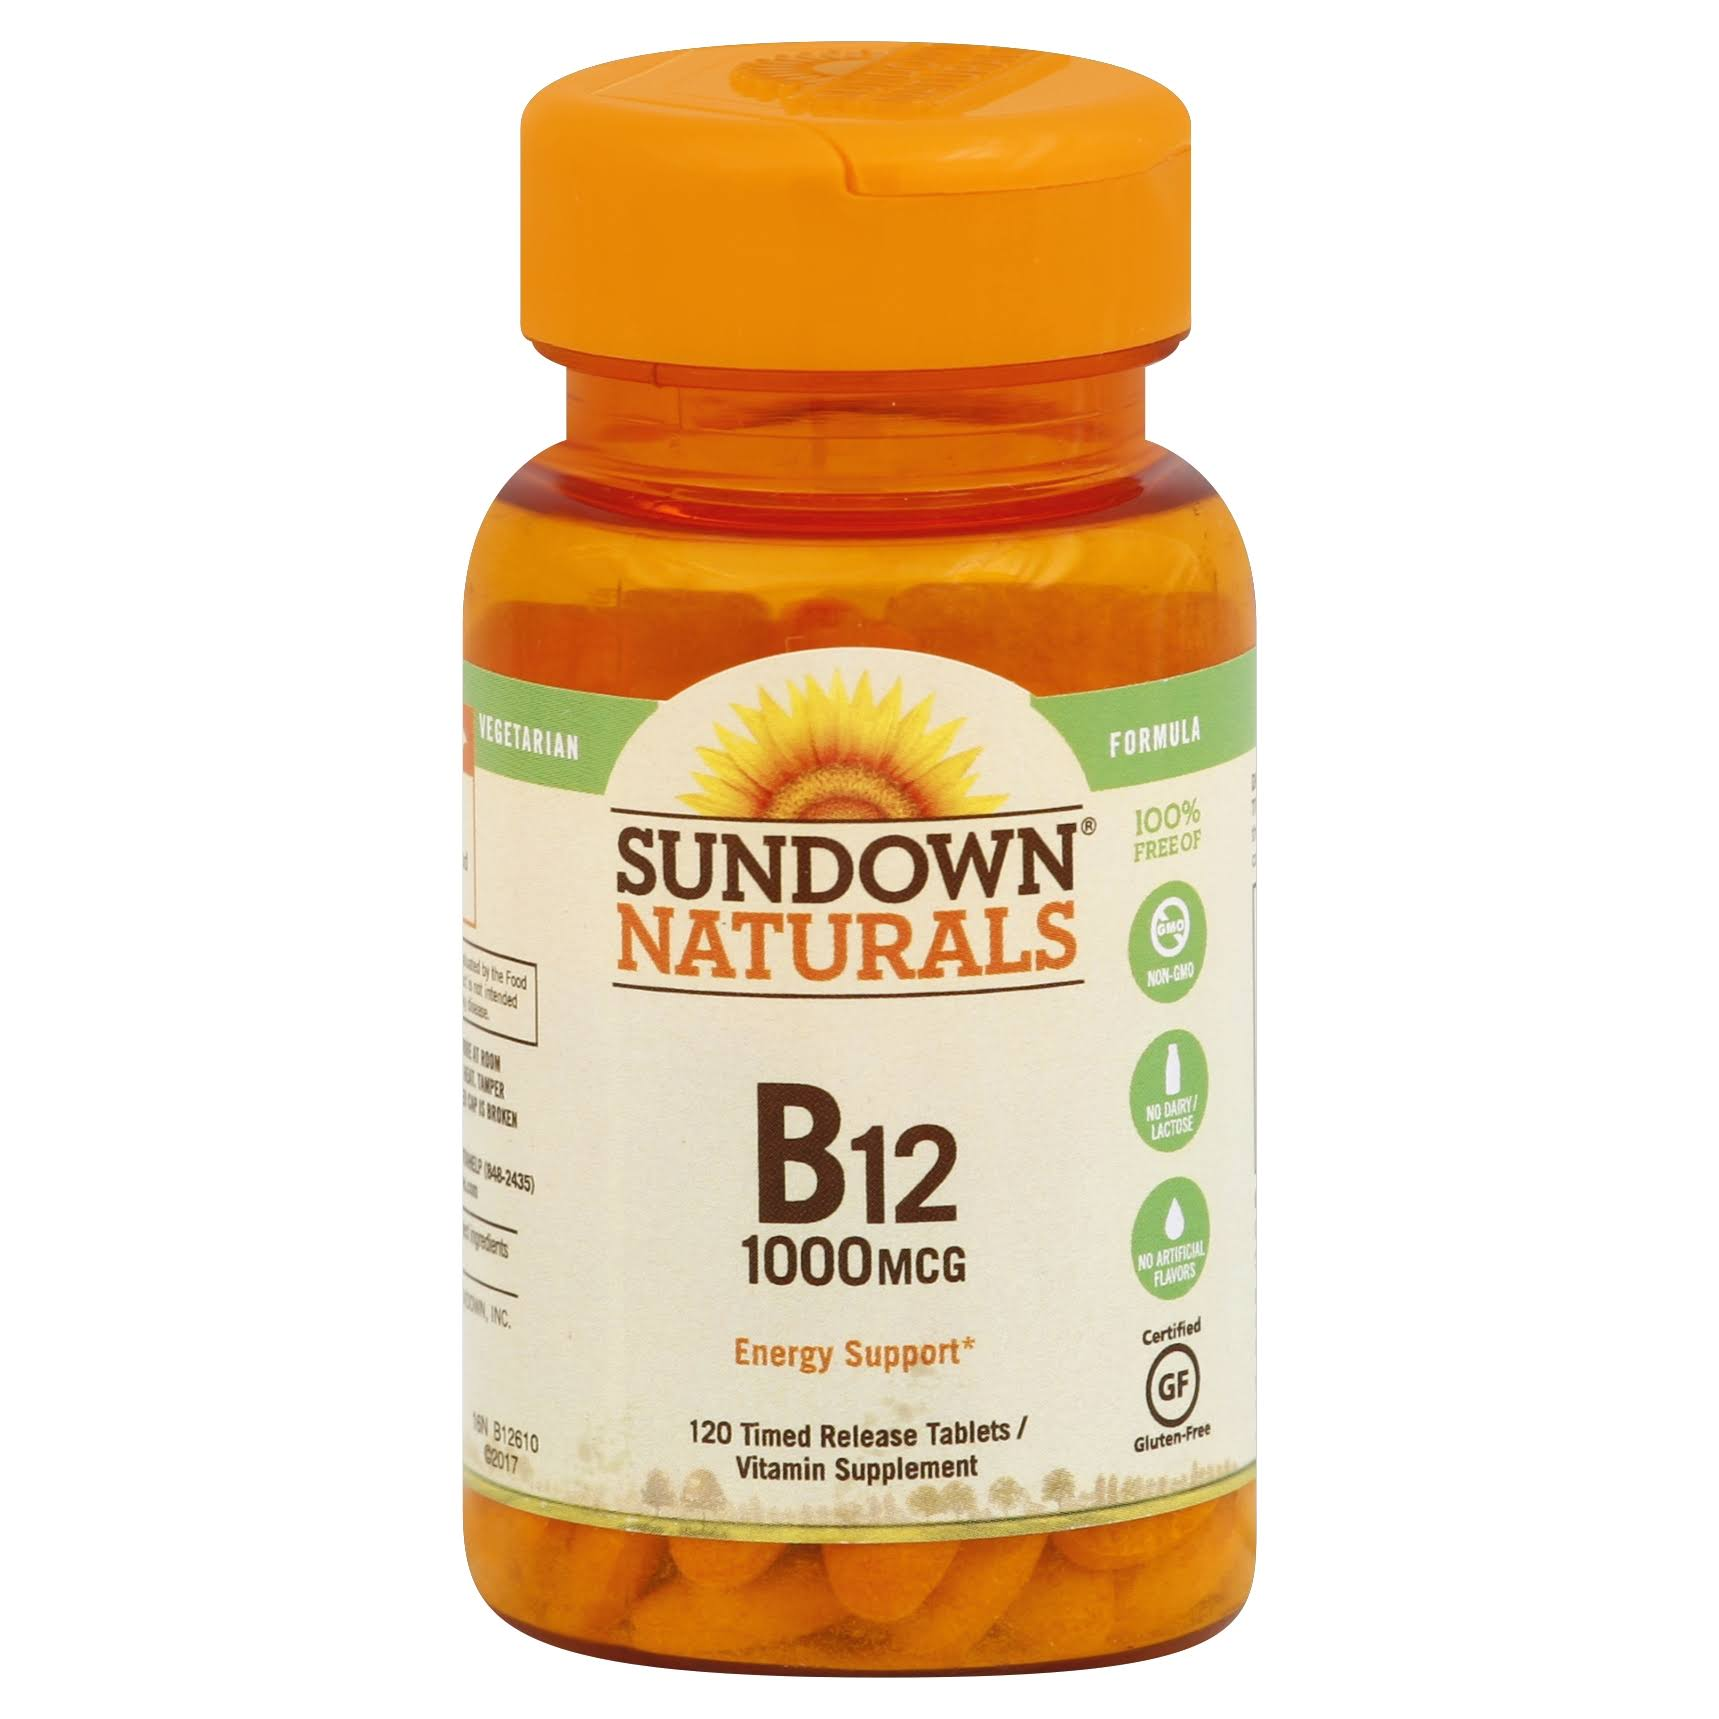 Sundown Naturals High Potency B12 Supplement - 1000mcg, 120ct